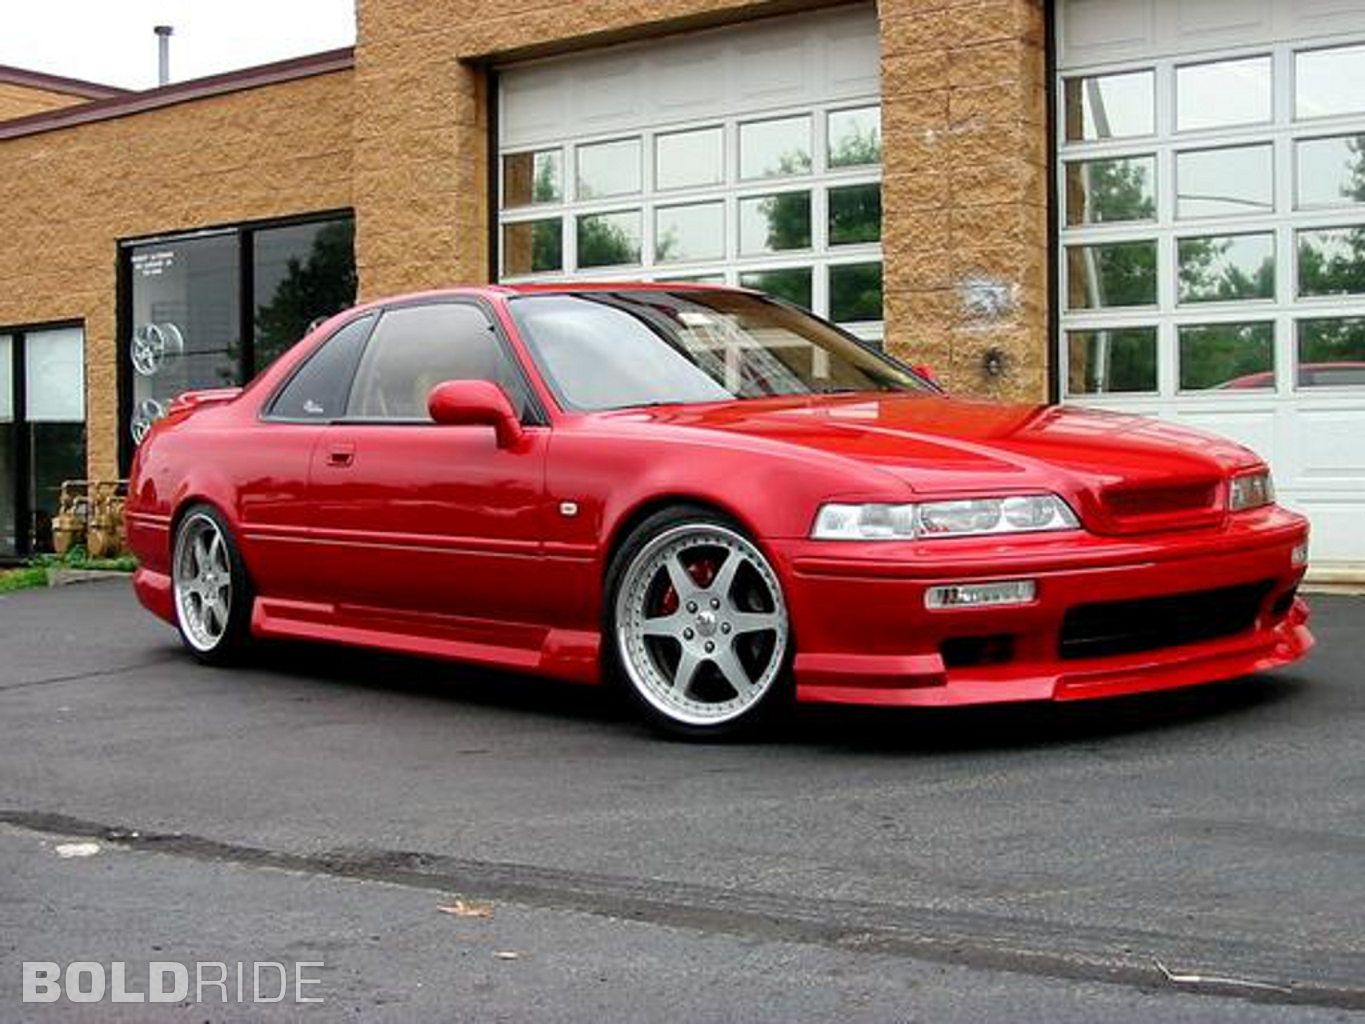 Acura Legend Coupe Jdm images